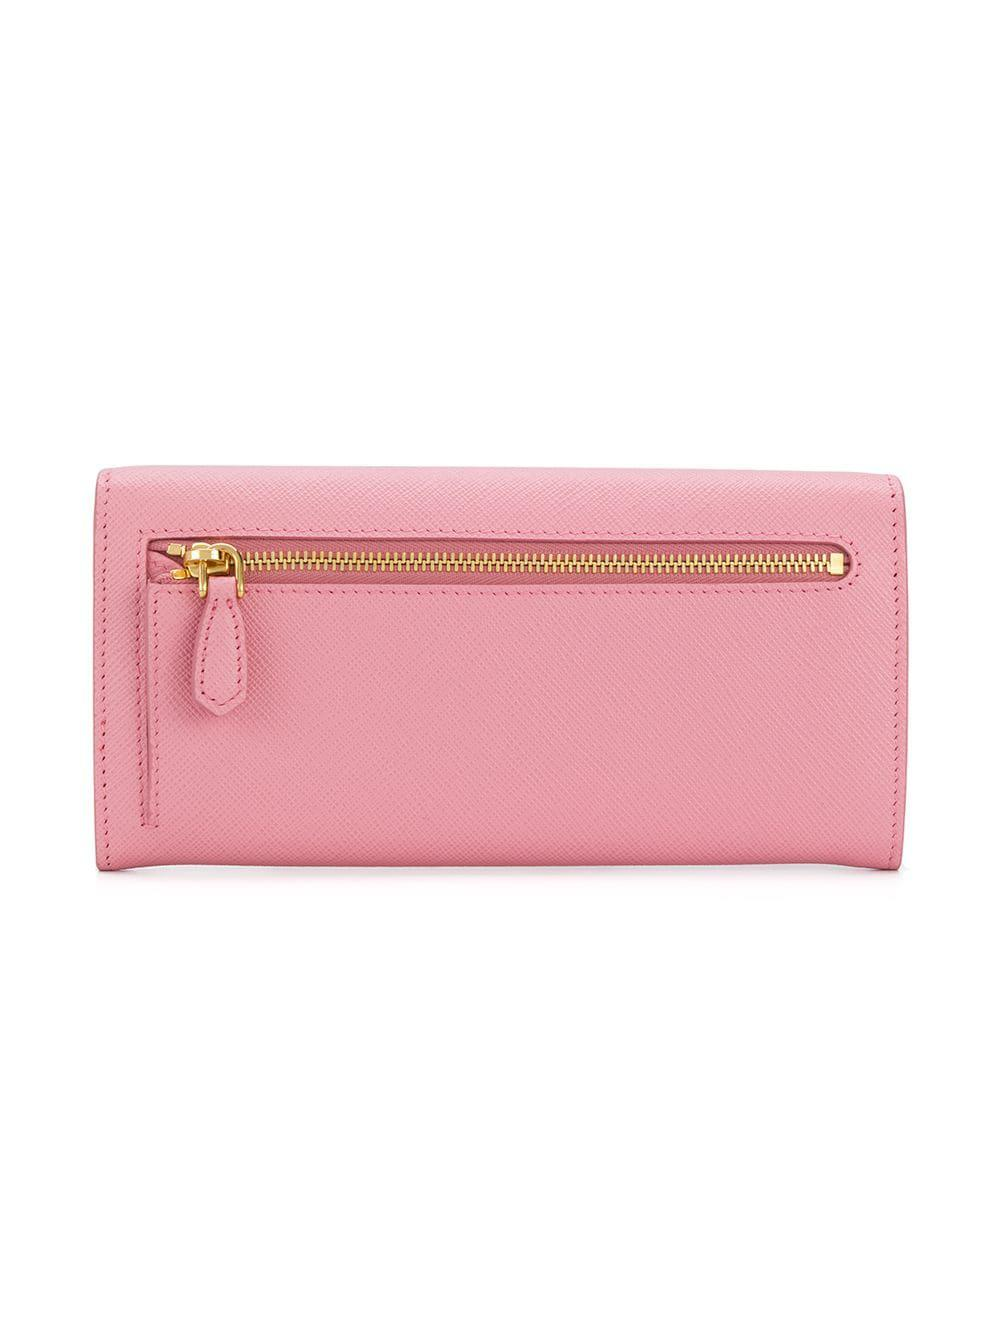 a77273a7d89b Lyst - Prada Saffiano Logo Wallet in Pink - Save 40%